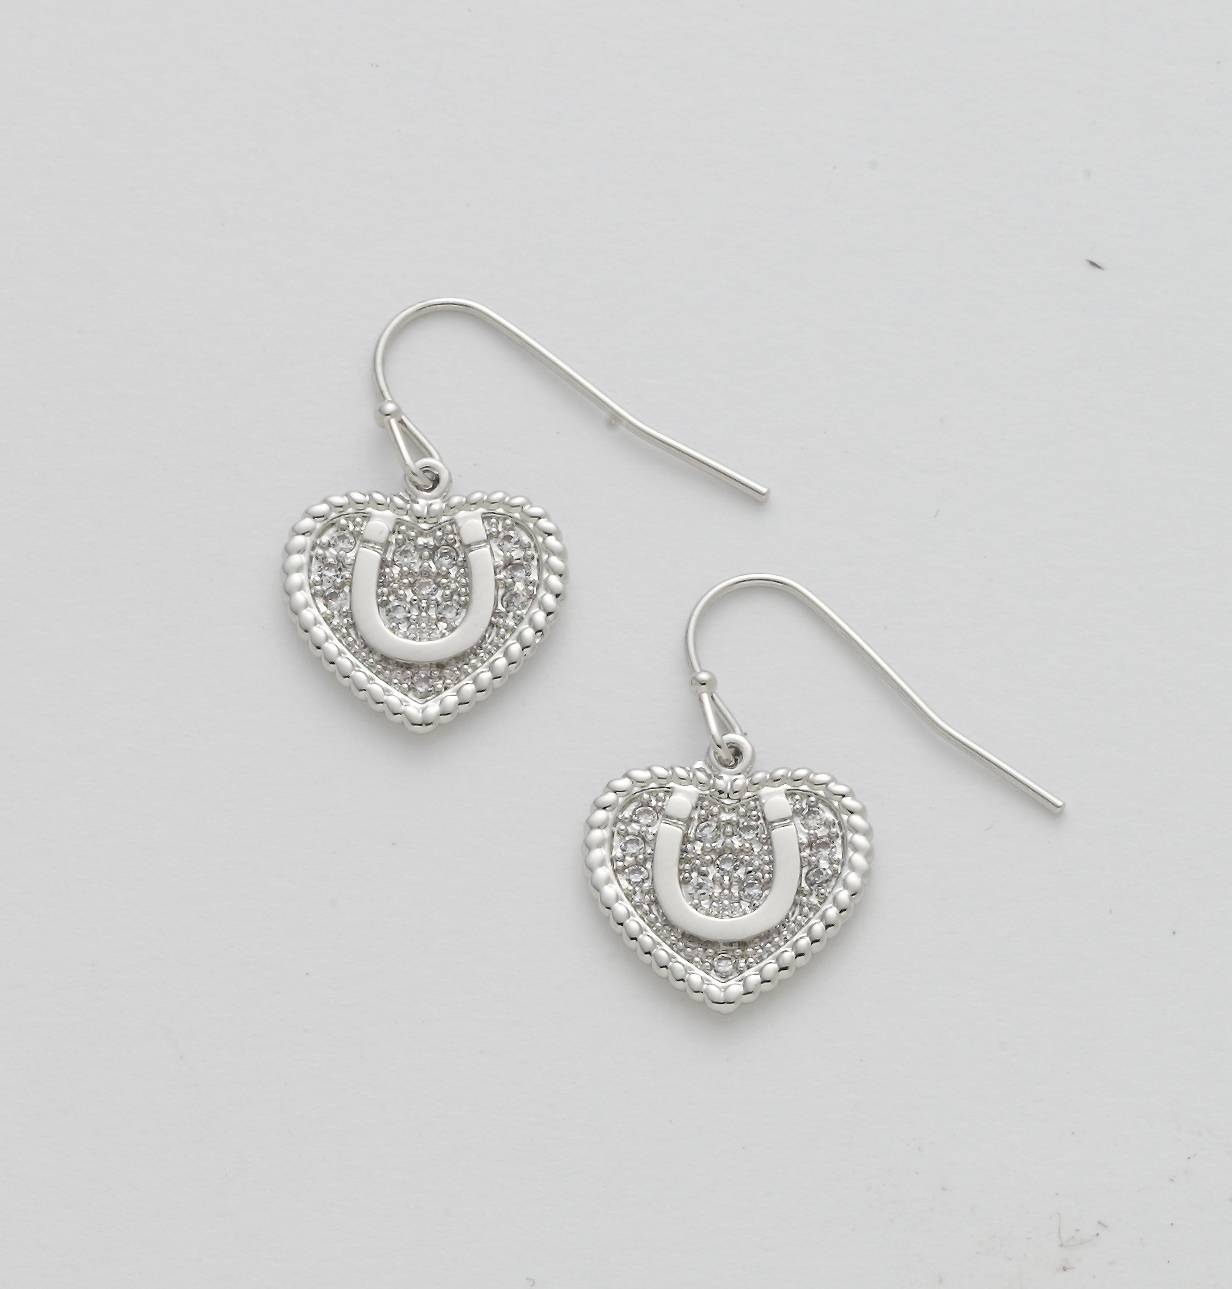 Double Row Rhinestone Heart with Horseshoe Earrings